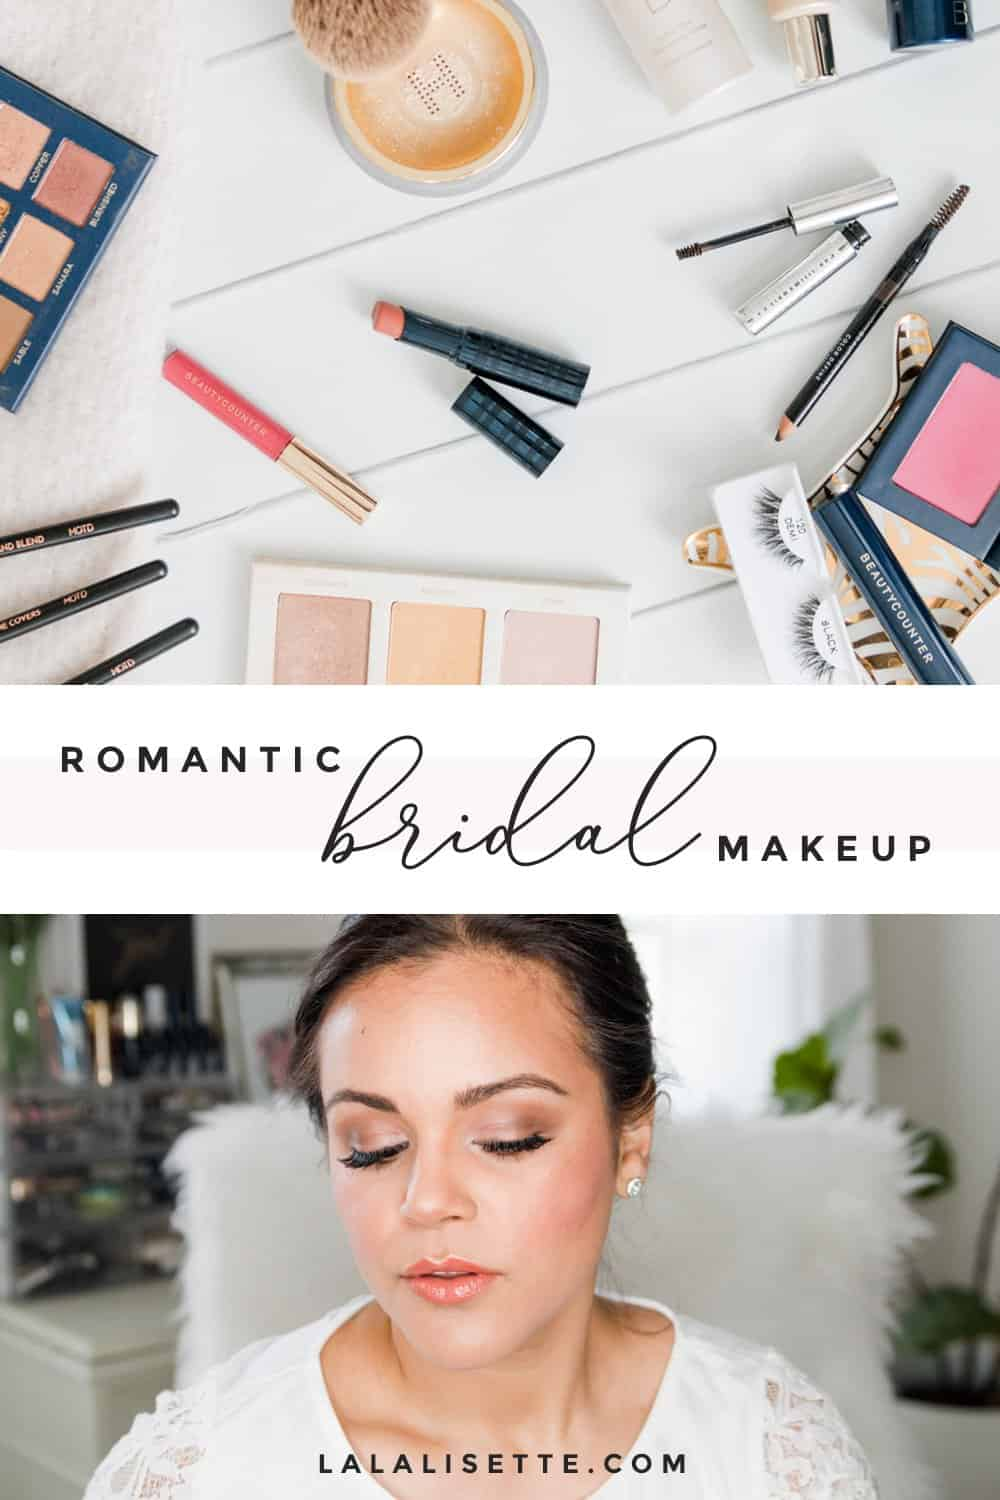 A bridal makeup tutorial using clean beauty products. This romantic makeup will look great on all skintones. #cleanbeauty #bridalmakeup #makeuptutorial #cleanbeautyproject